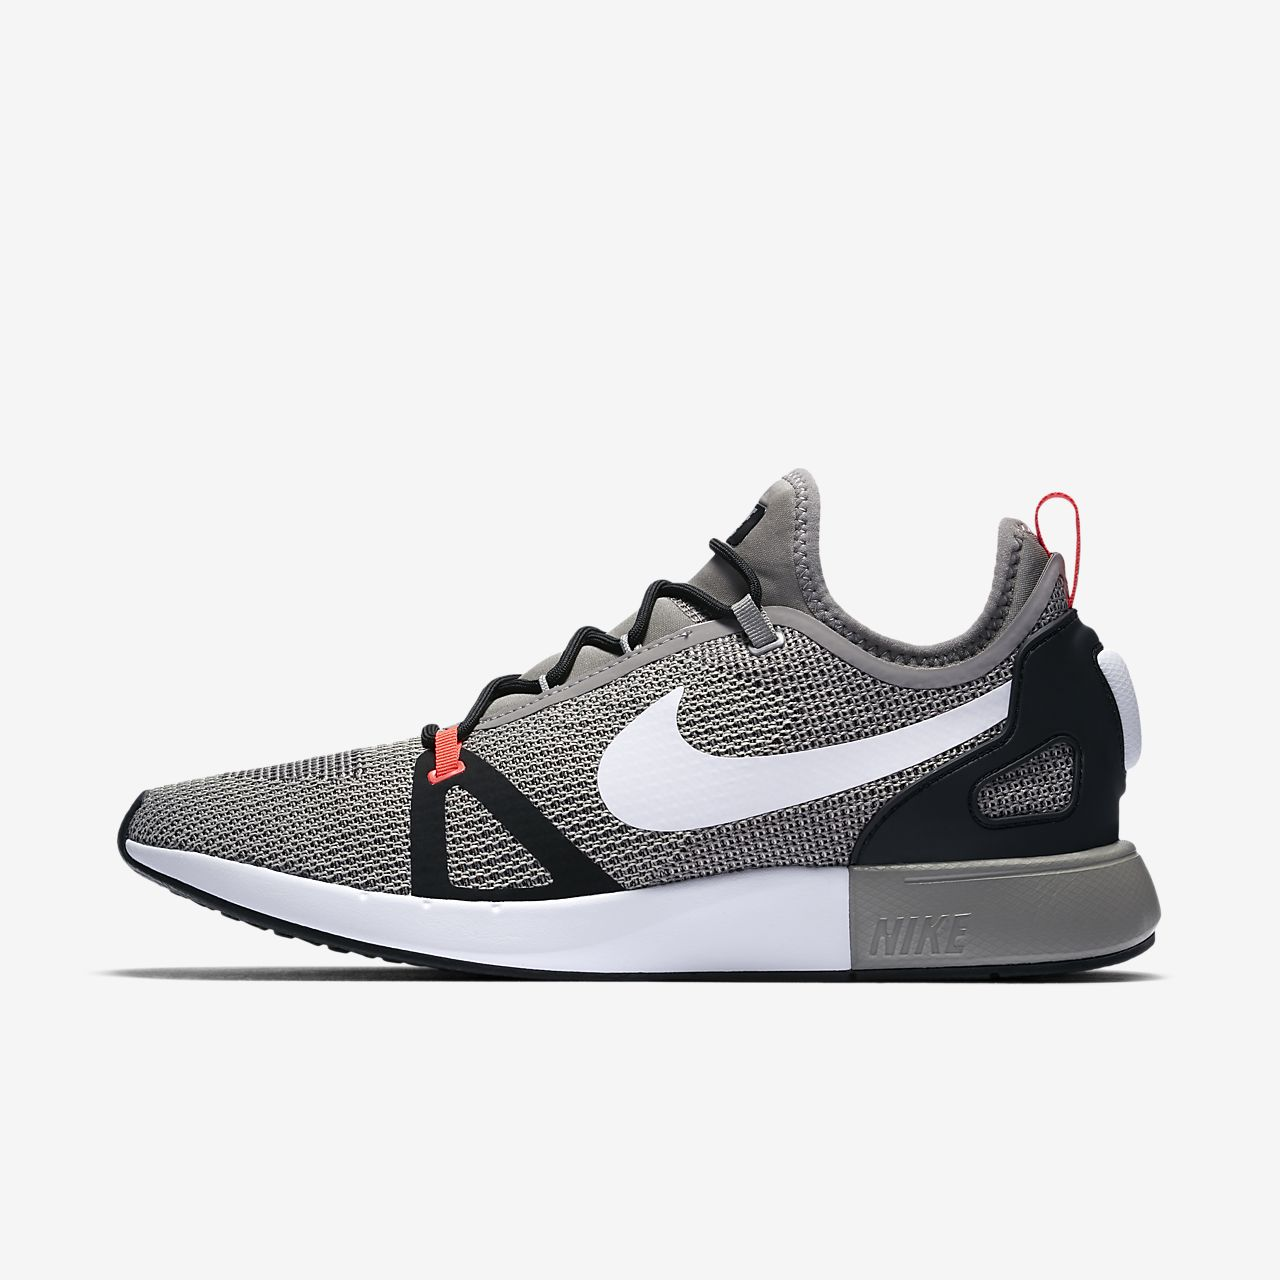 Best Choice Nike Duelist Racer Trainers (Triple Black) Y55y7259